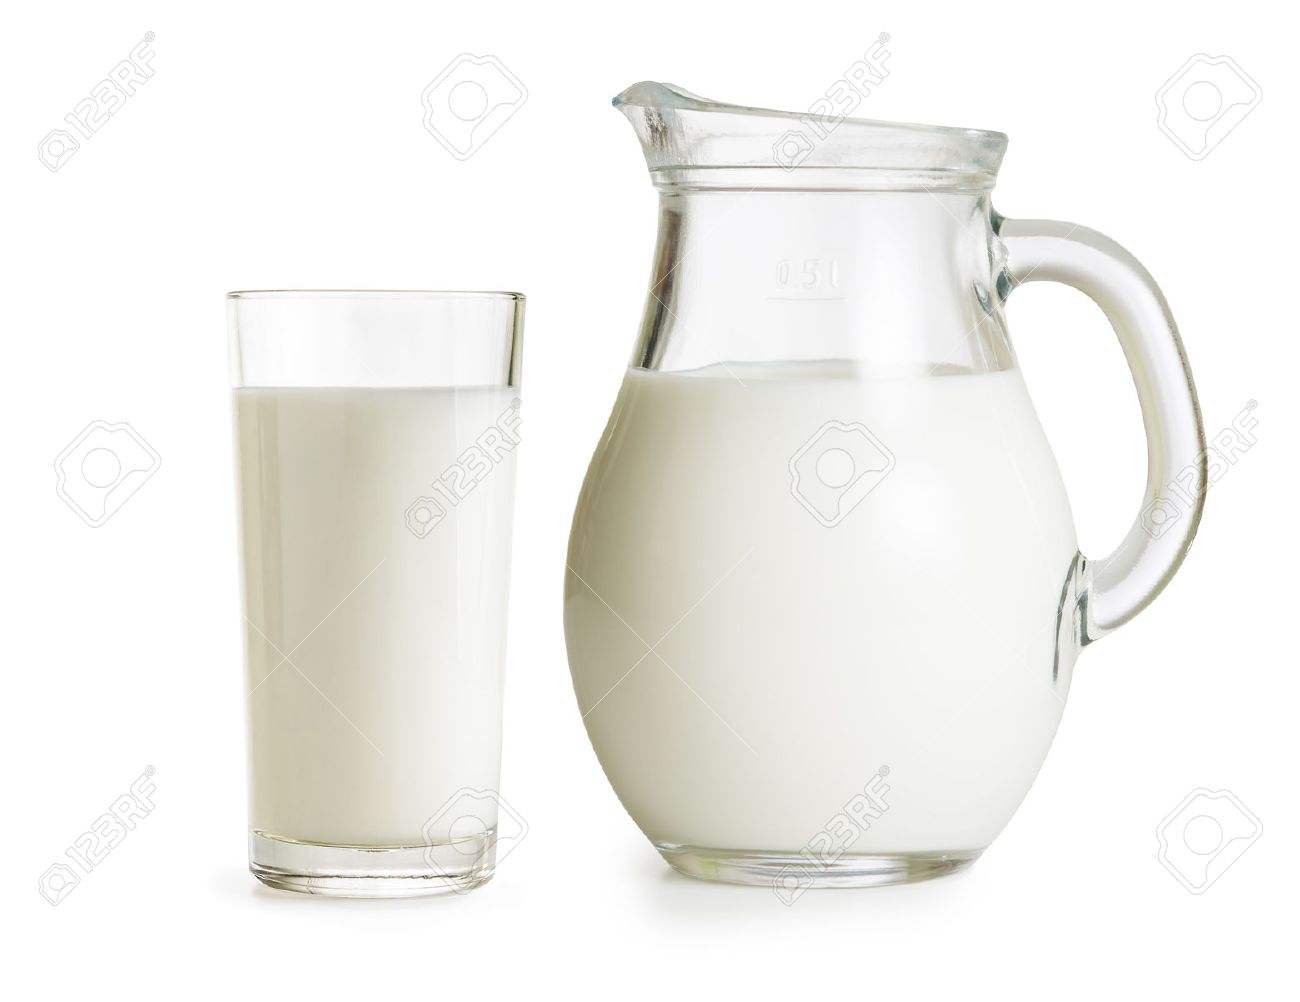 Milchkännchen Glas jug and glass on white background stock photo picture and